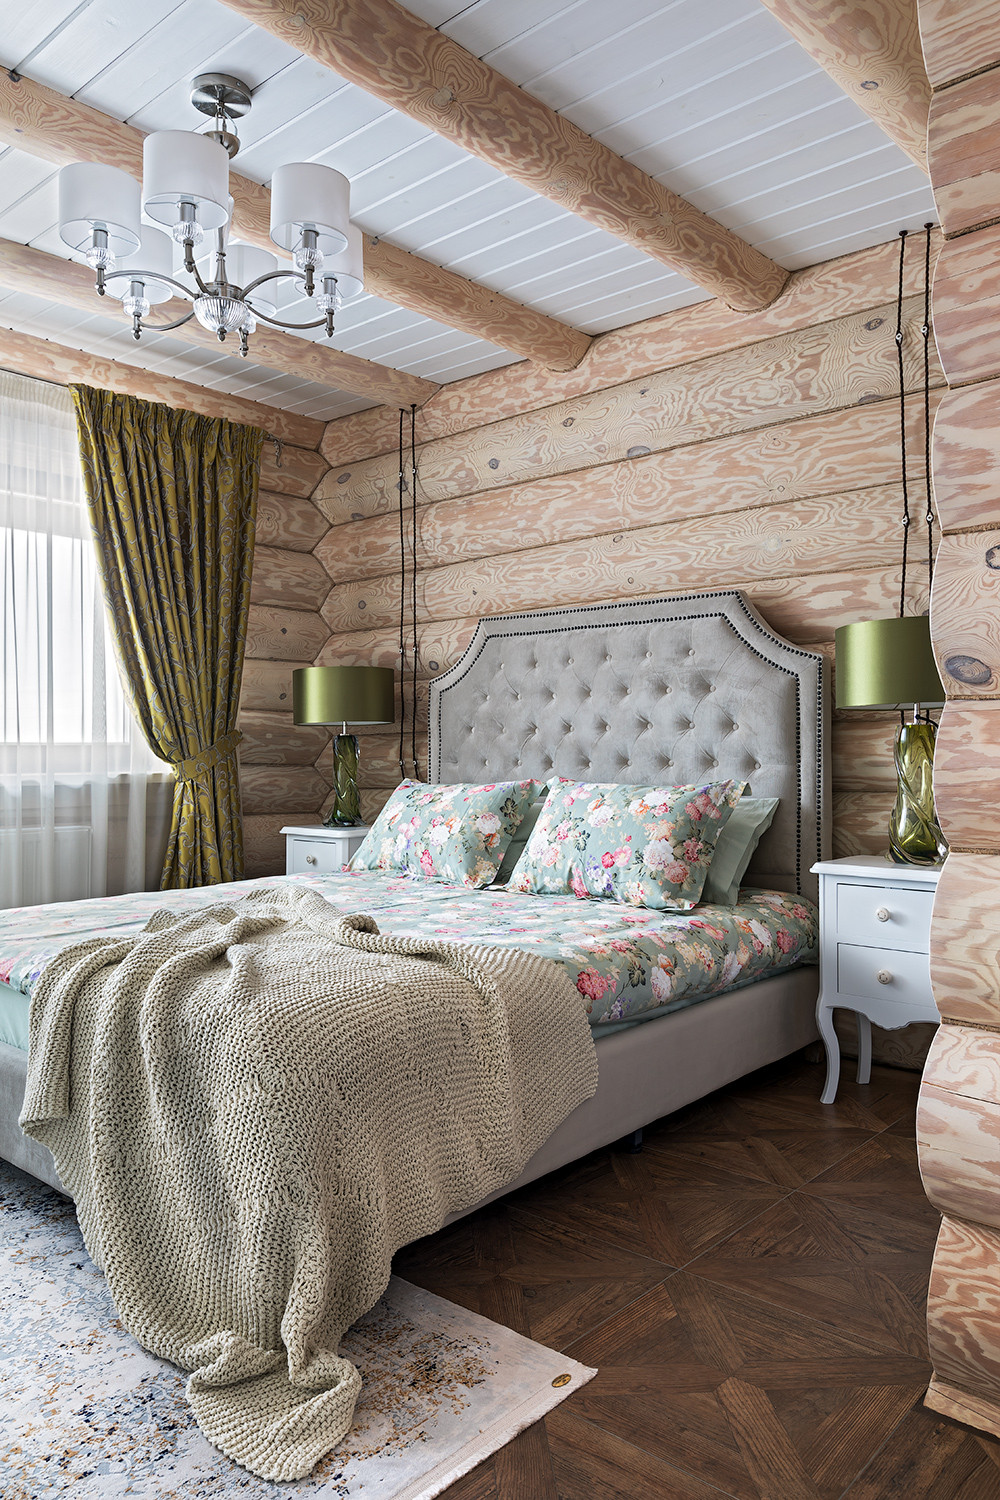 Gorgeous modern rustic bedroom in wood and white with a hint of Green thrown into the mix